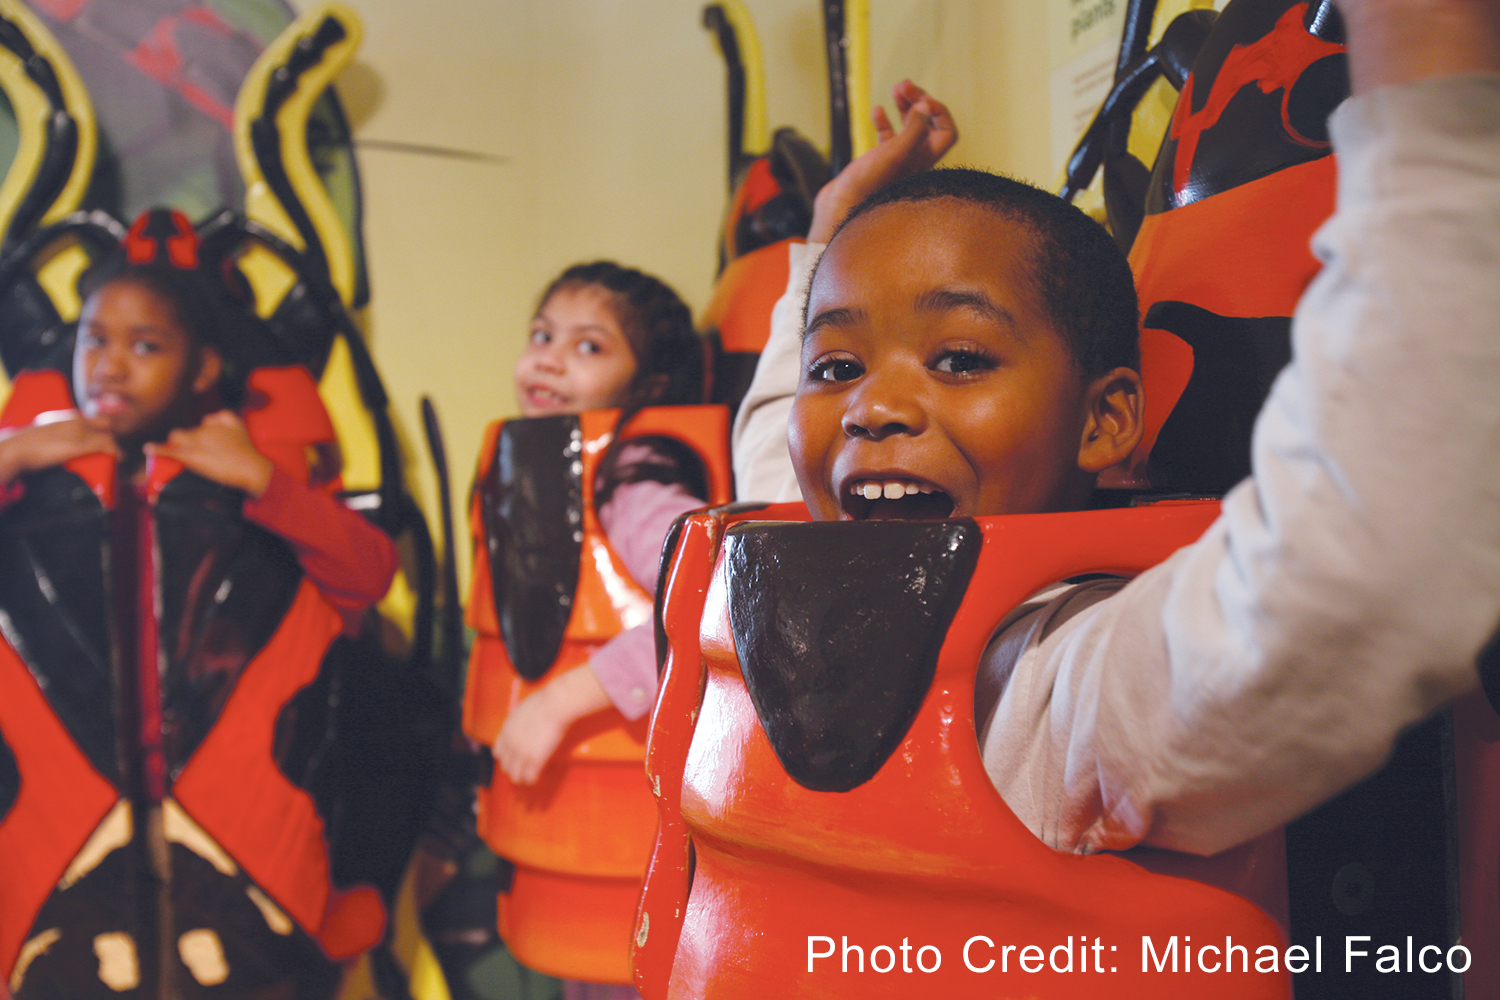 Staten Island Children's Museum at Snug Harbor - Located at Snug Harbor, the Staten Island Children's Museum promotes a hands-on and interactive approach in its exhibits in order to cultivate child learning.1000 Richmond Terrace, Building M, SI, NY 10301sichildrensmuseum.org